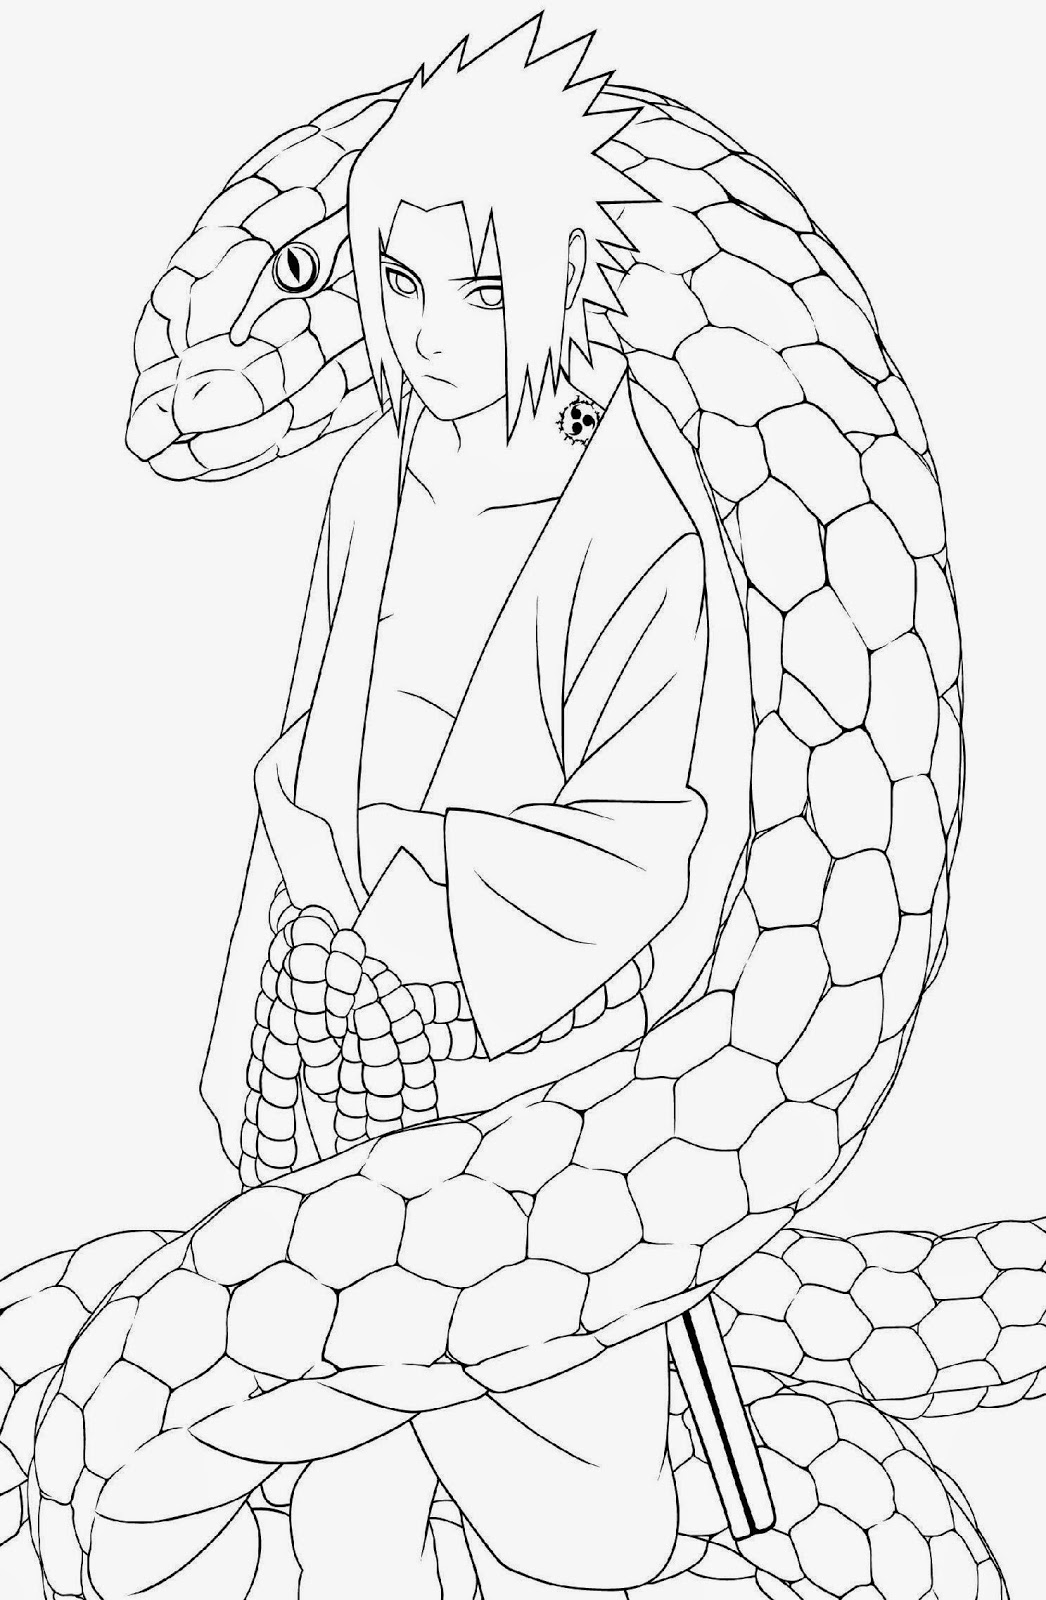 Naruto coloring sheets free coloring sheet for Naruto colored pages